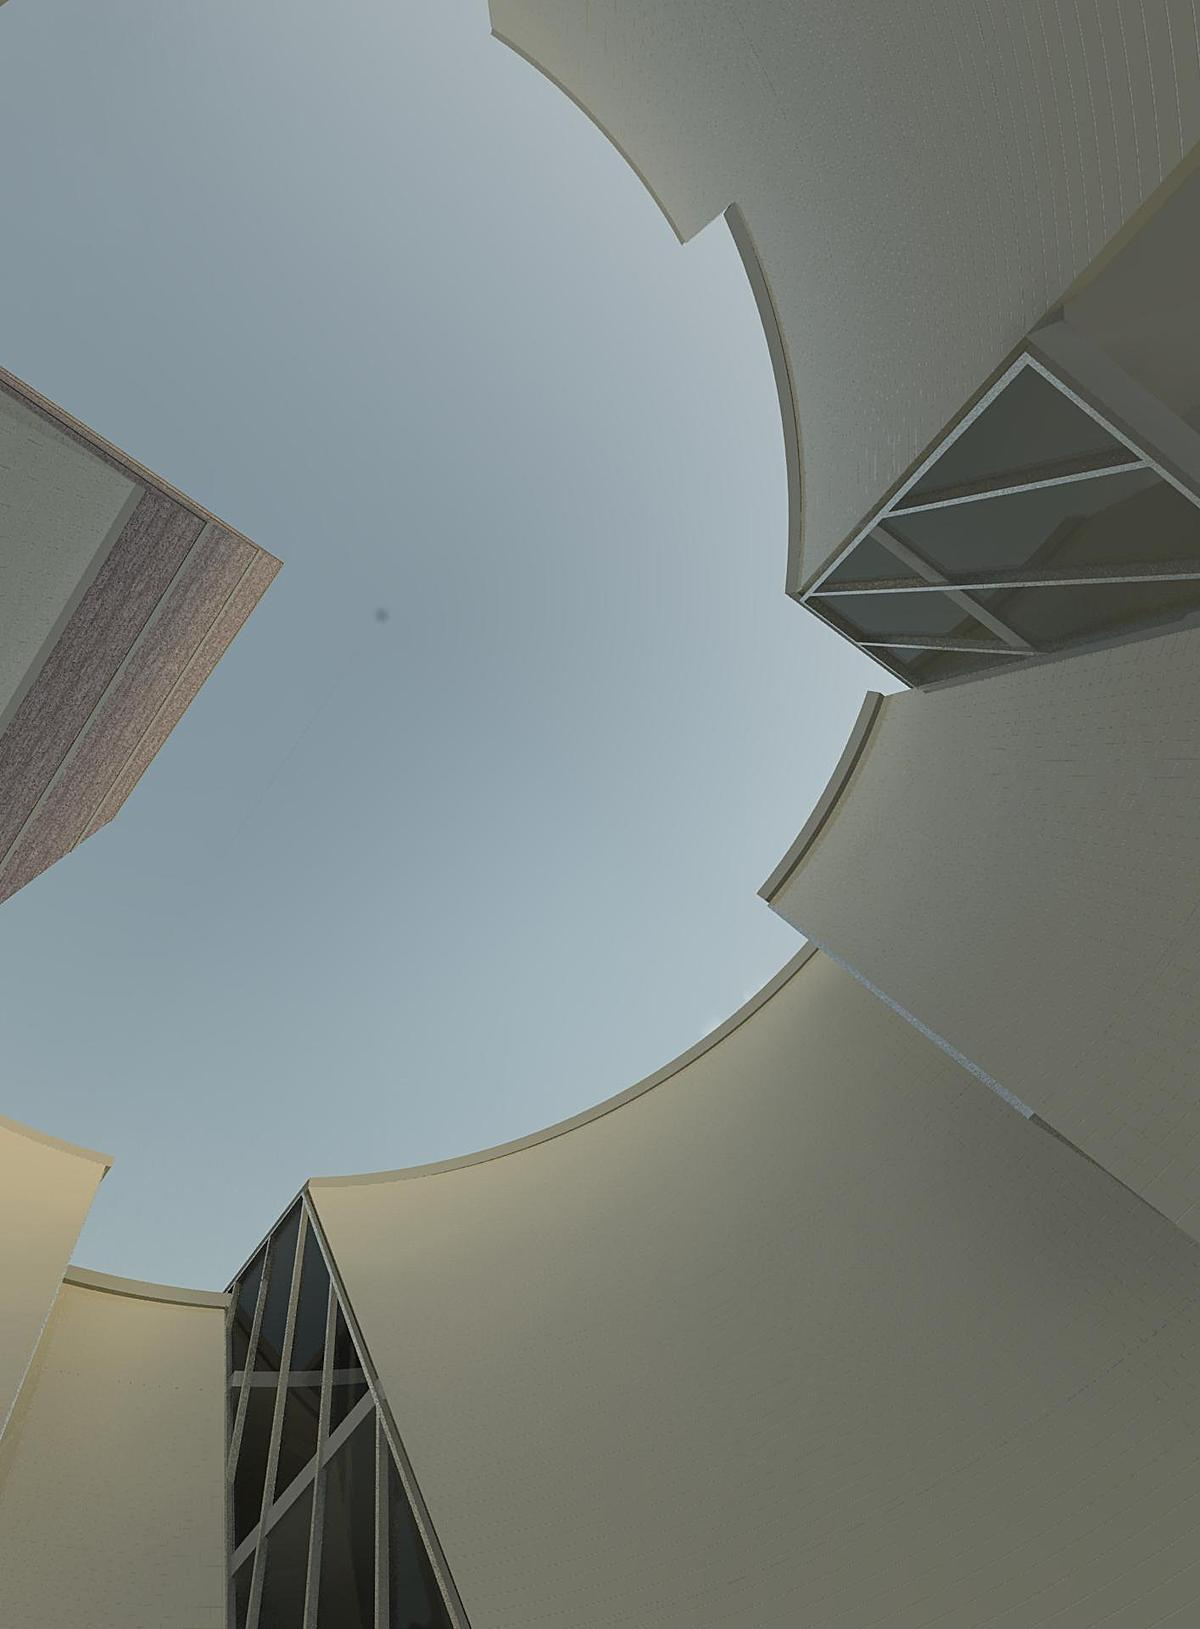 View looking up from courtyard